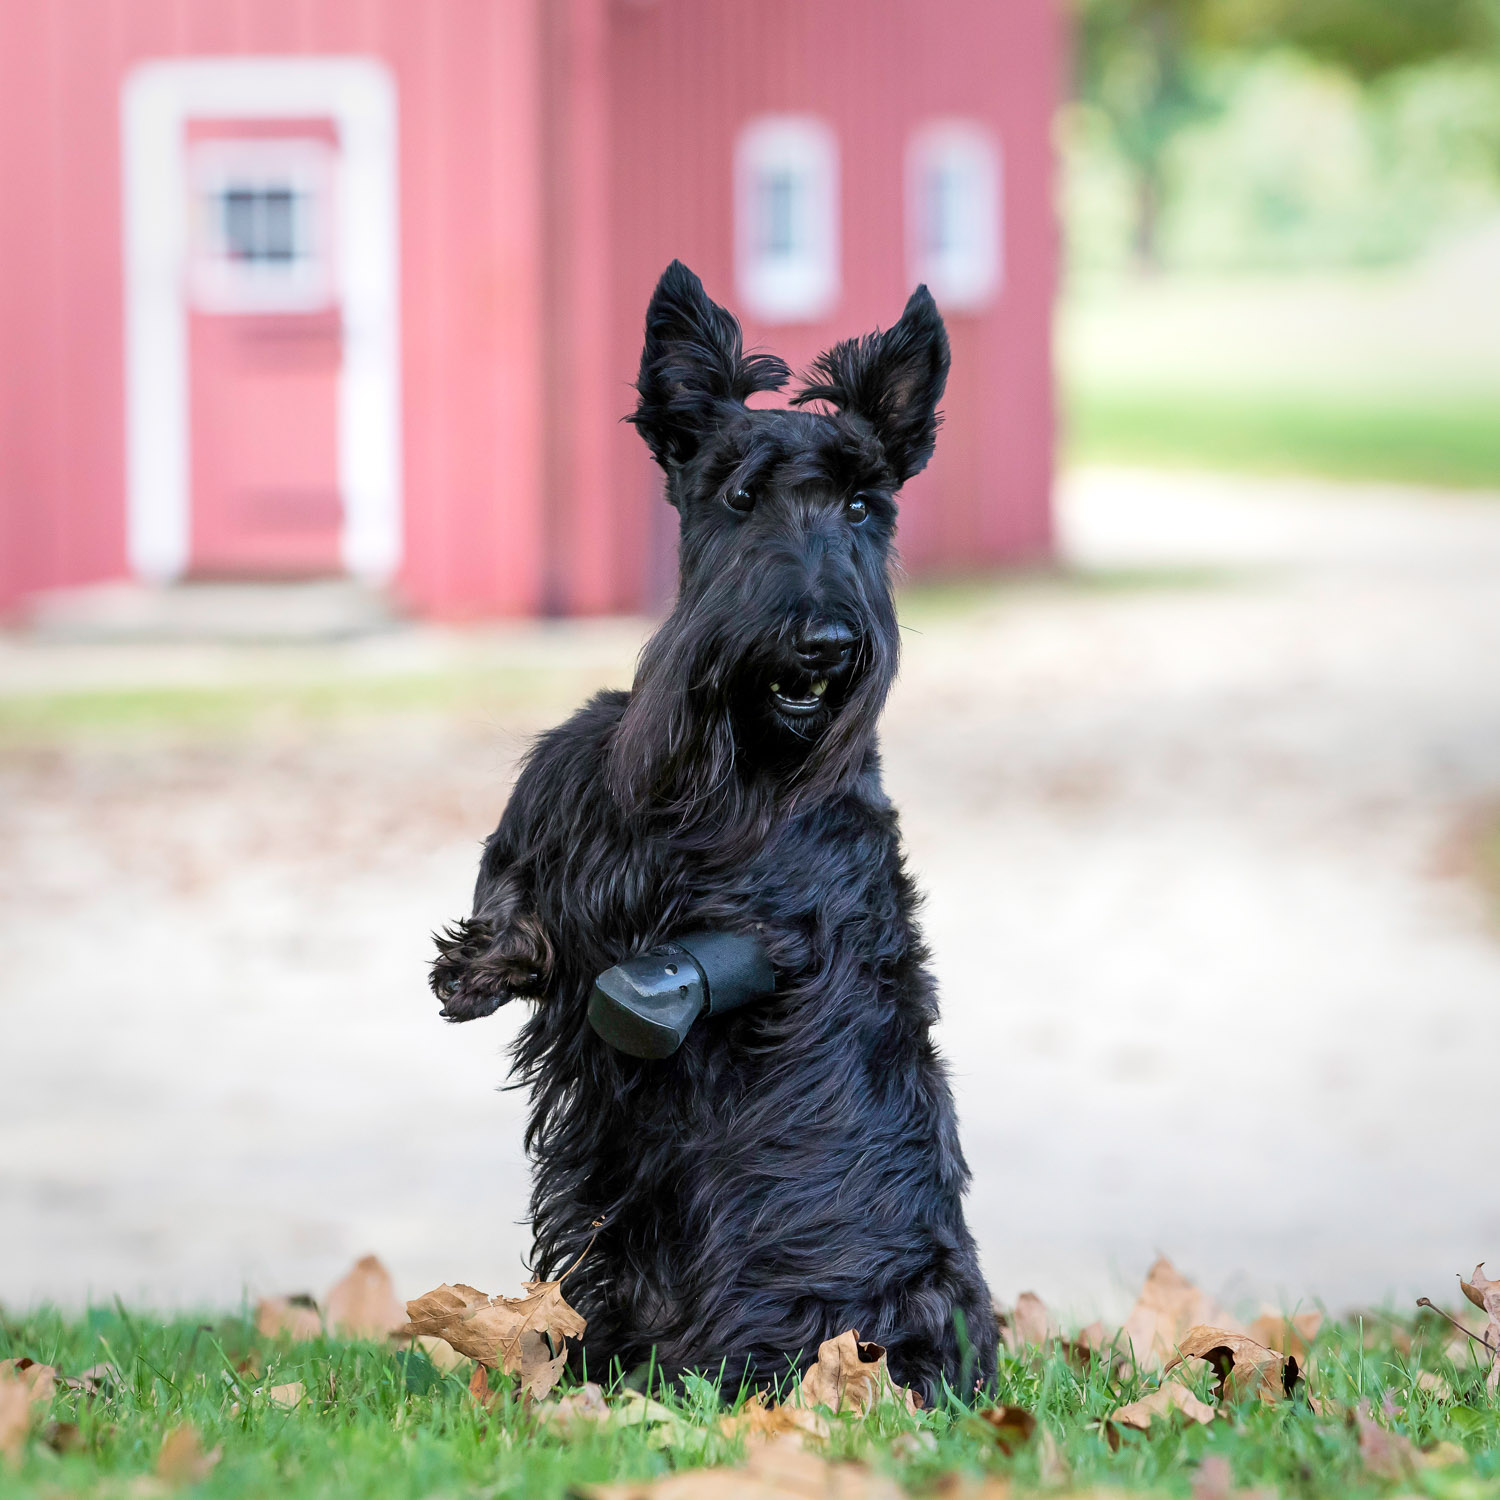 Adorable Scottie dog in front of red barn